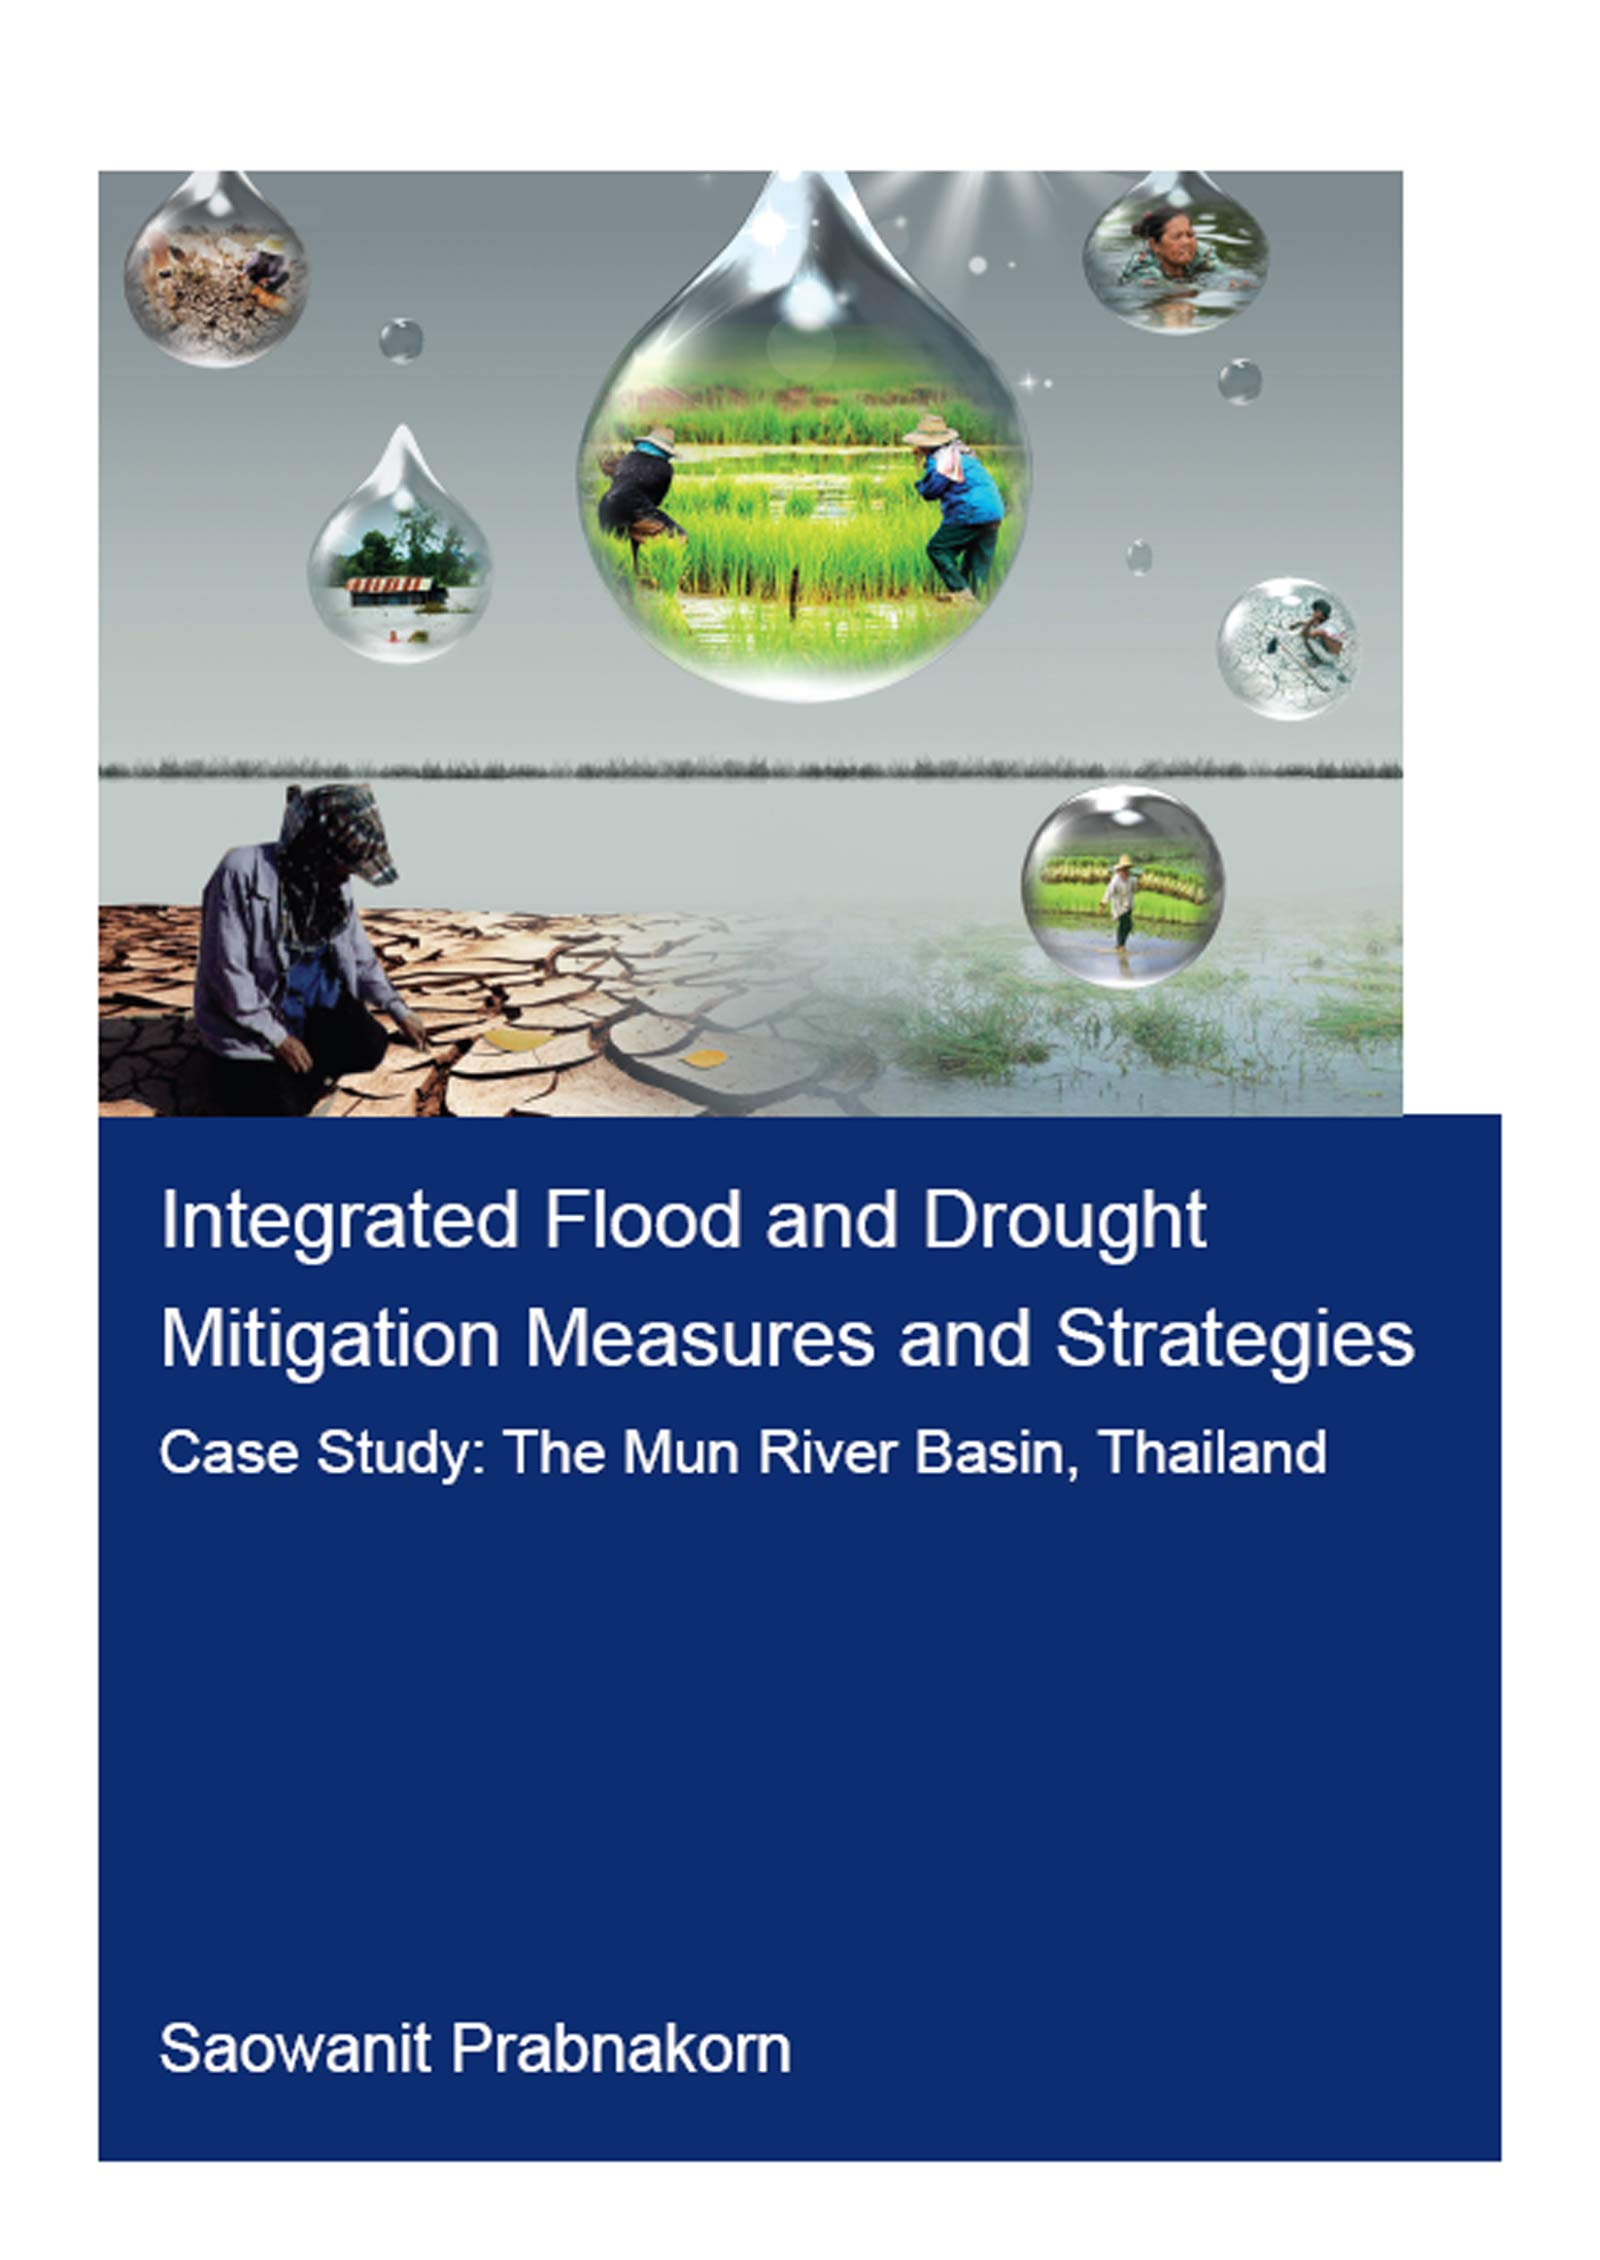 Integrated Flood and Drought Mitigation Mesures and Strategies. Case Study: The Mun River Basin, Thailand (IHE Delft PhD Thesis Series)